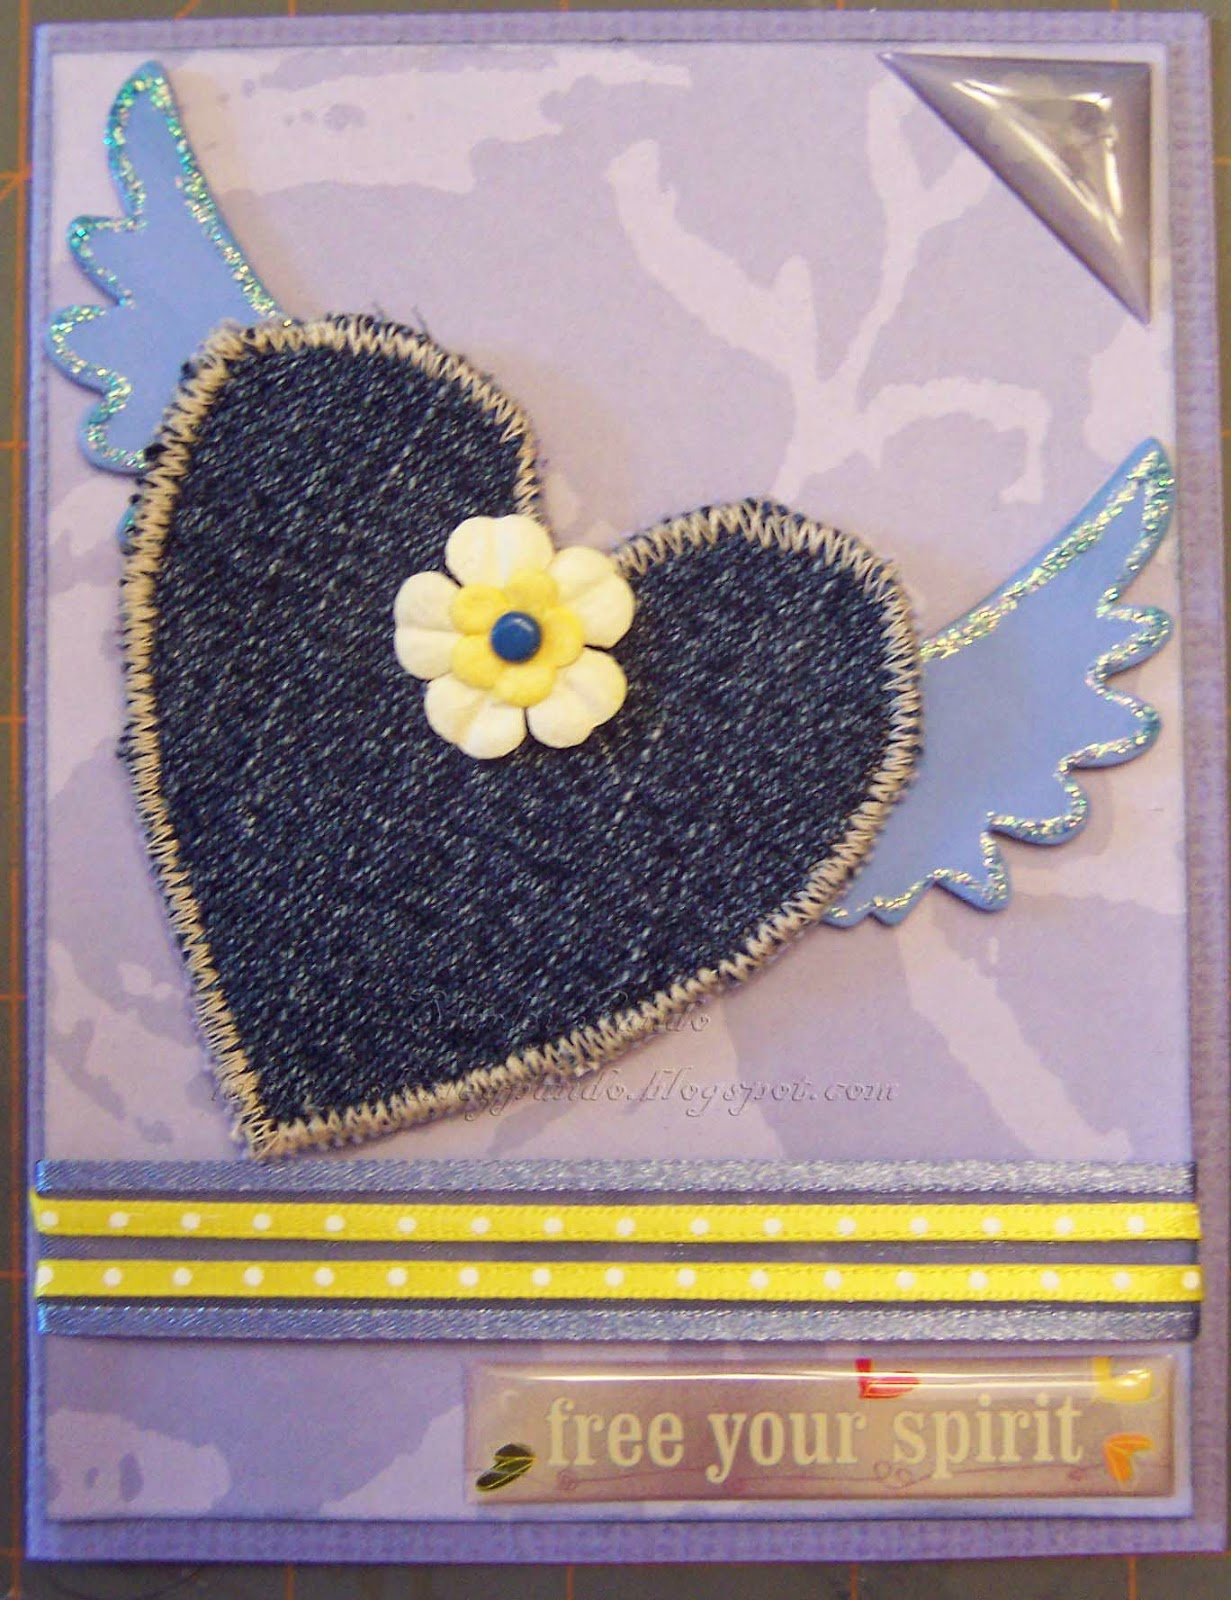 Blue Jean Heart card